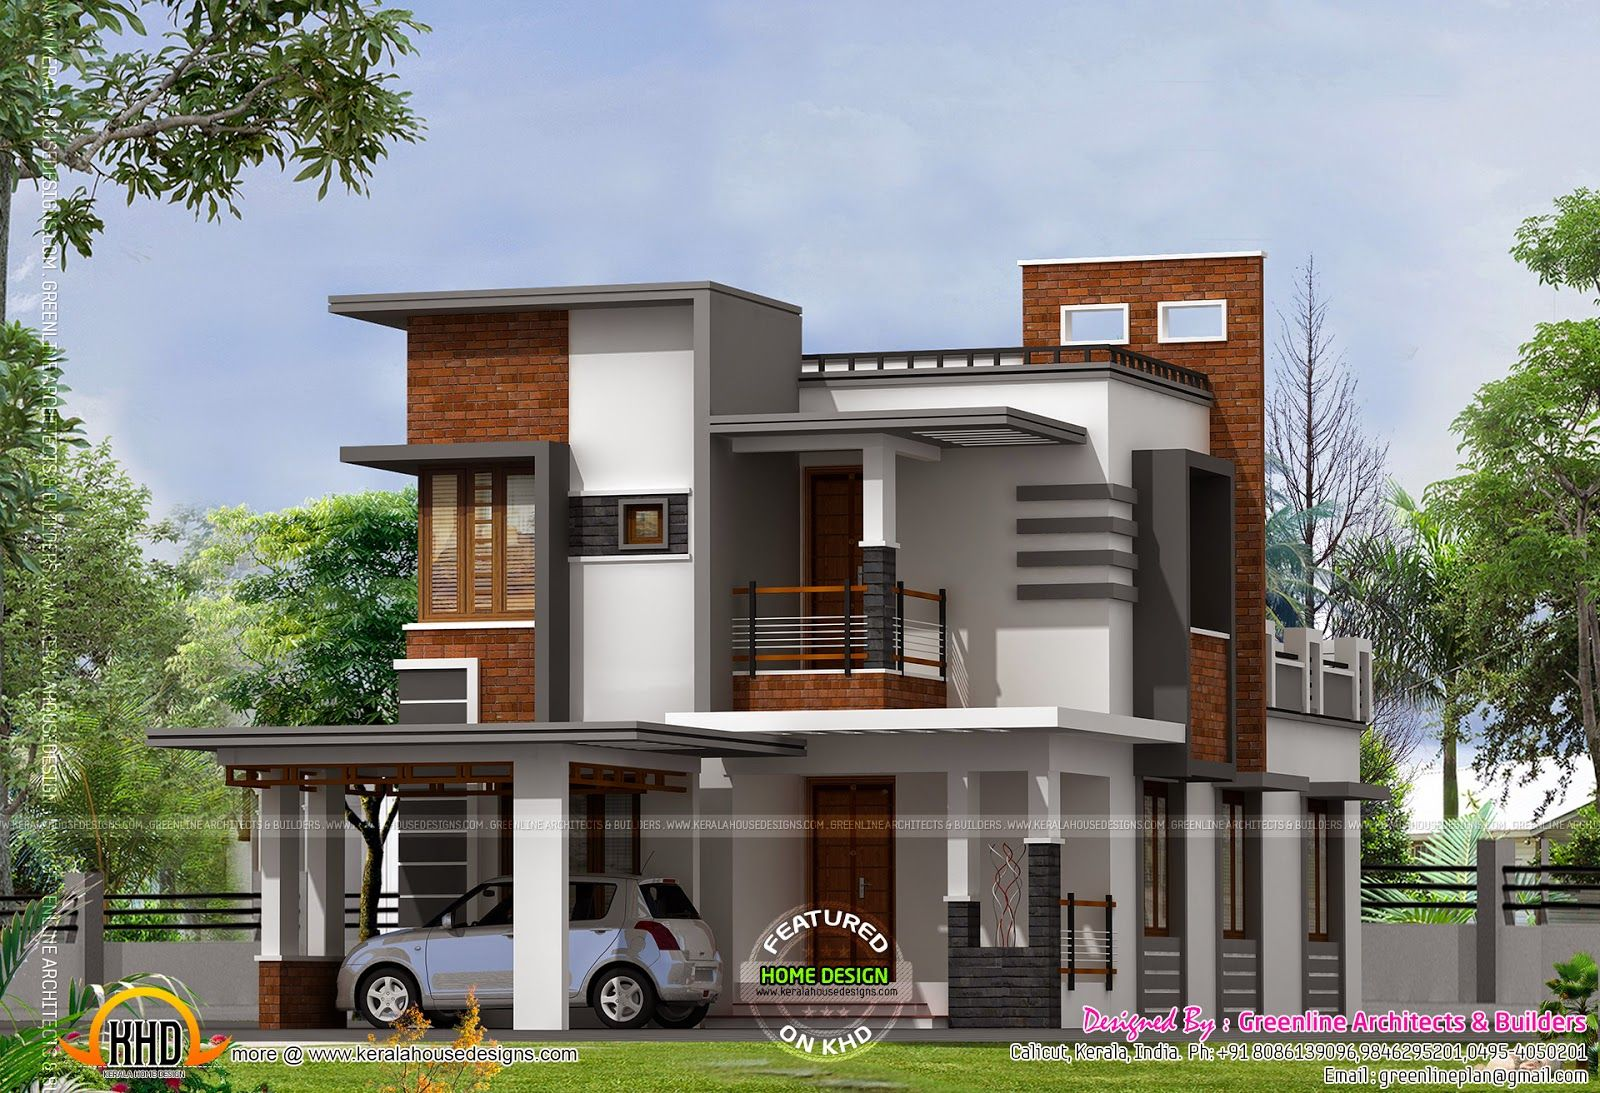 Low cost contemporary house house elevation indian for House designs with price